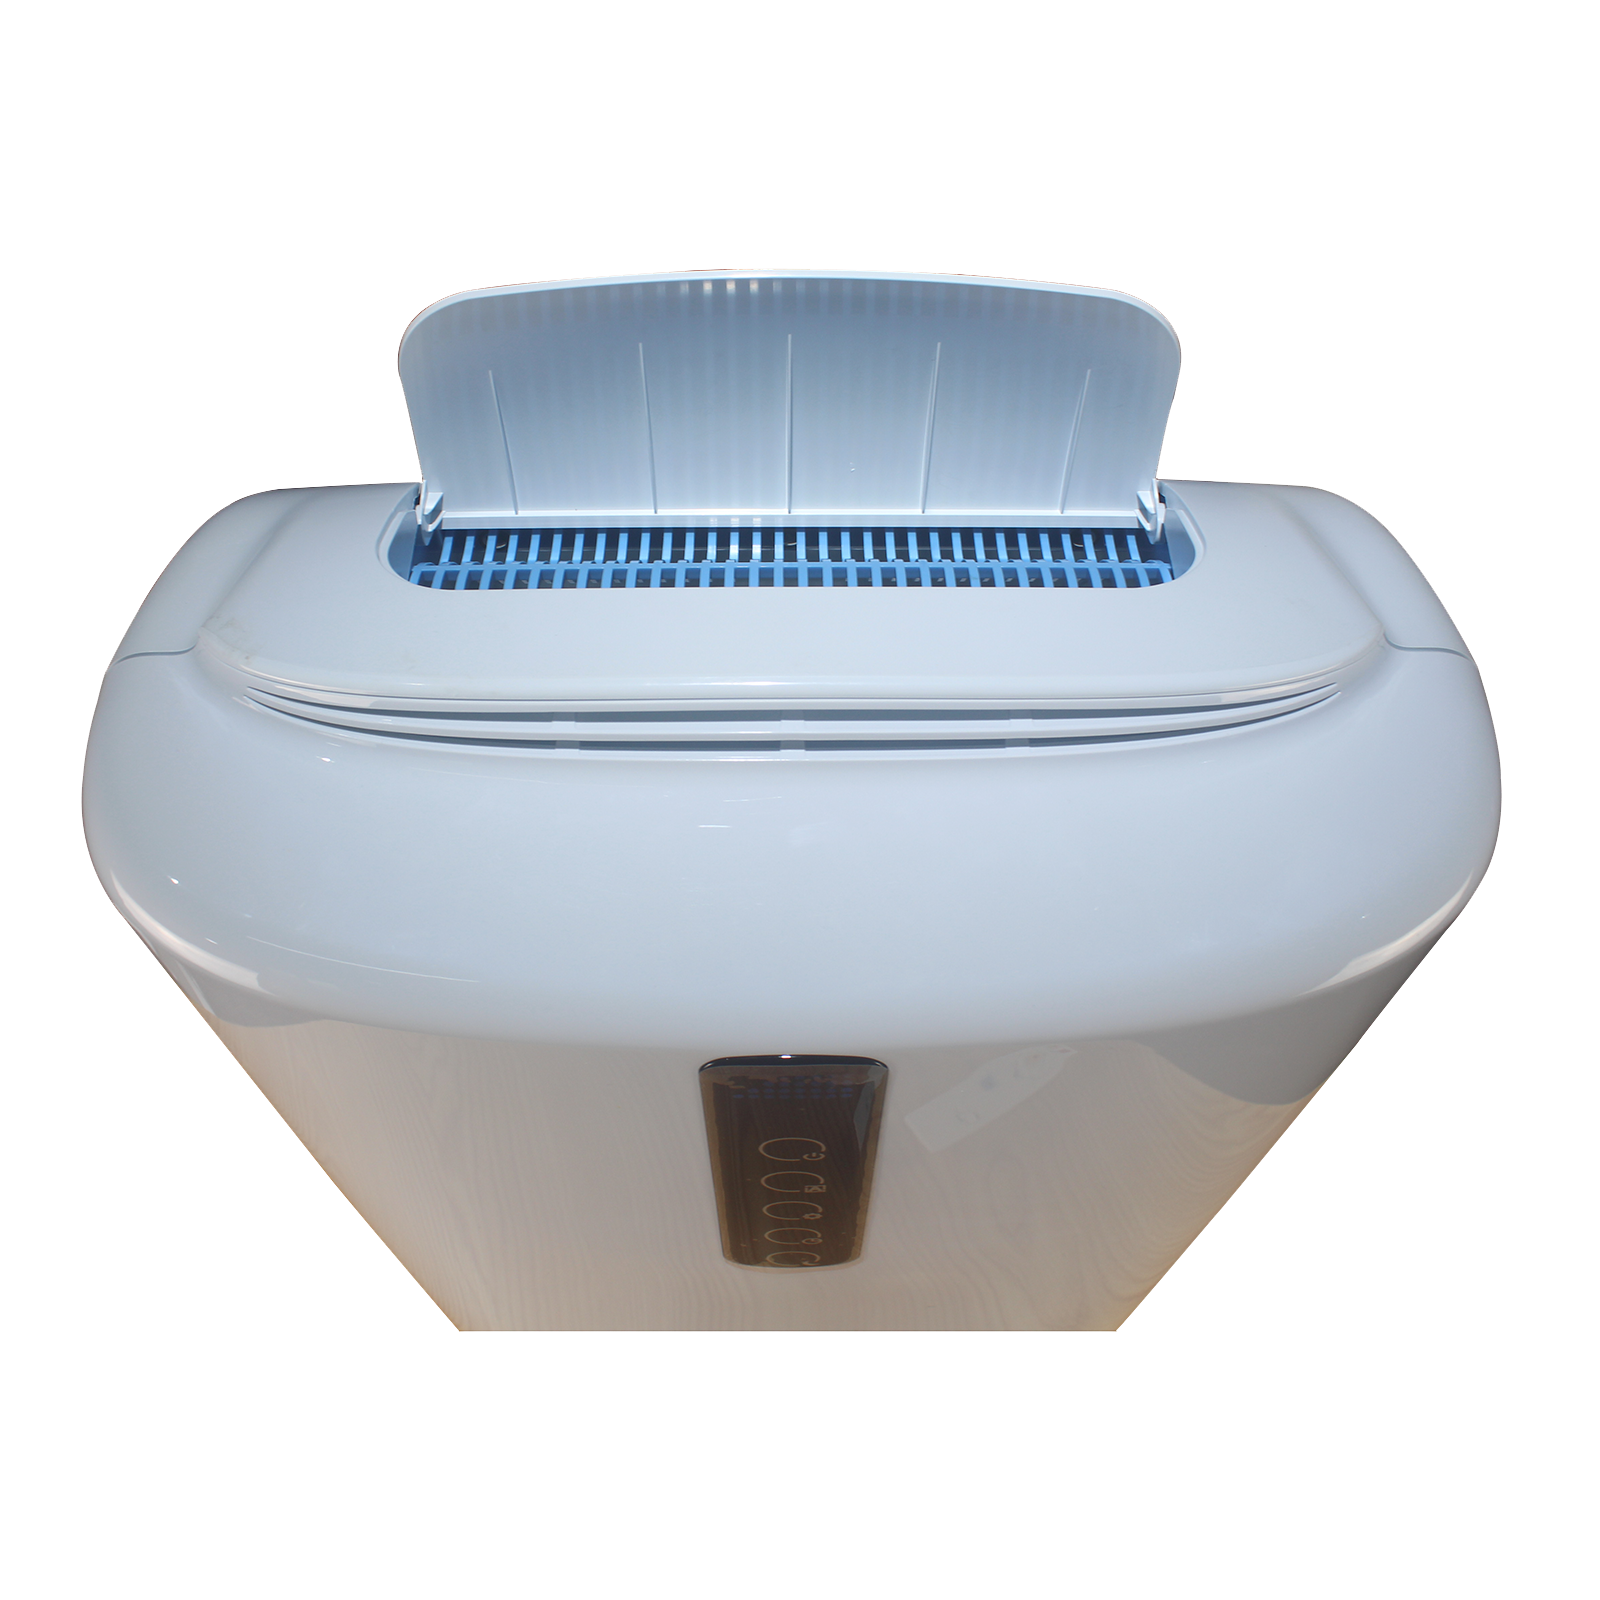 New Model Portable Intelligent Purification Remove Smog PM 2.5 H13 HEPA Filter Air Purifier